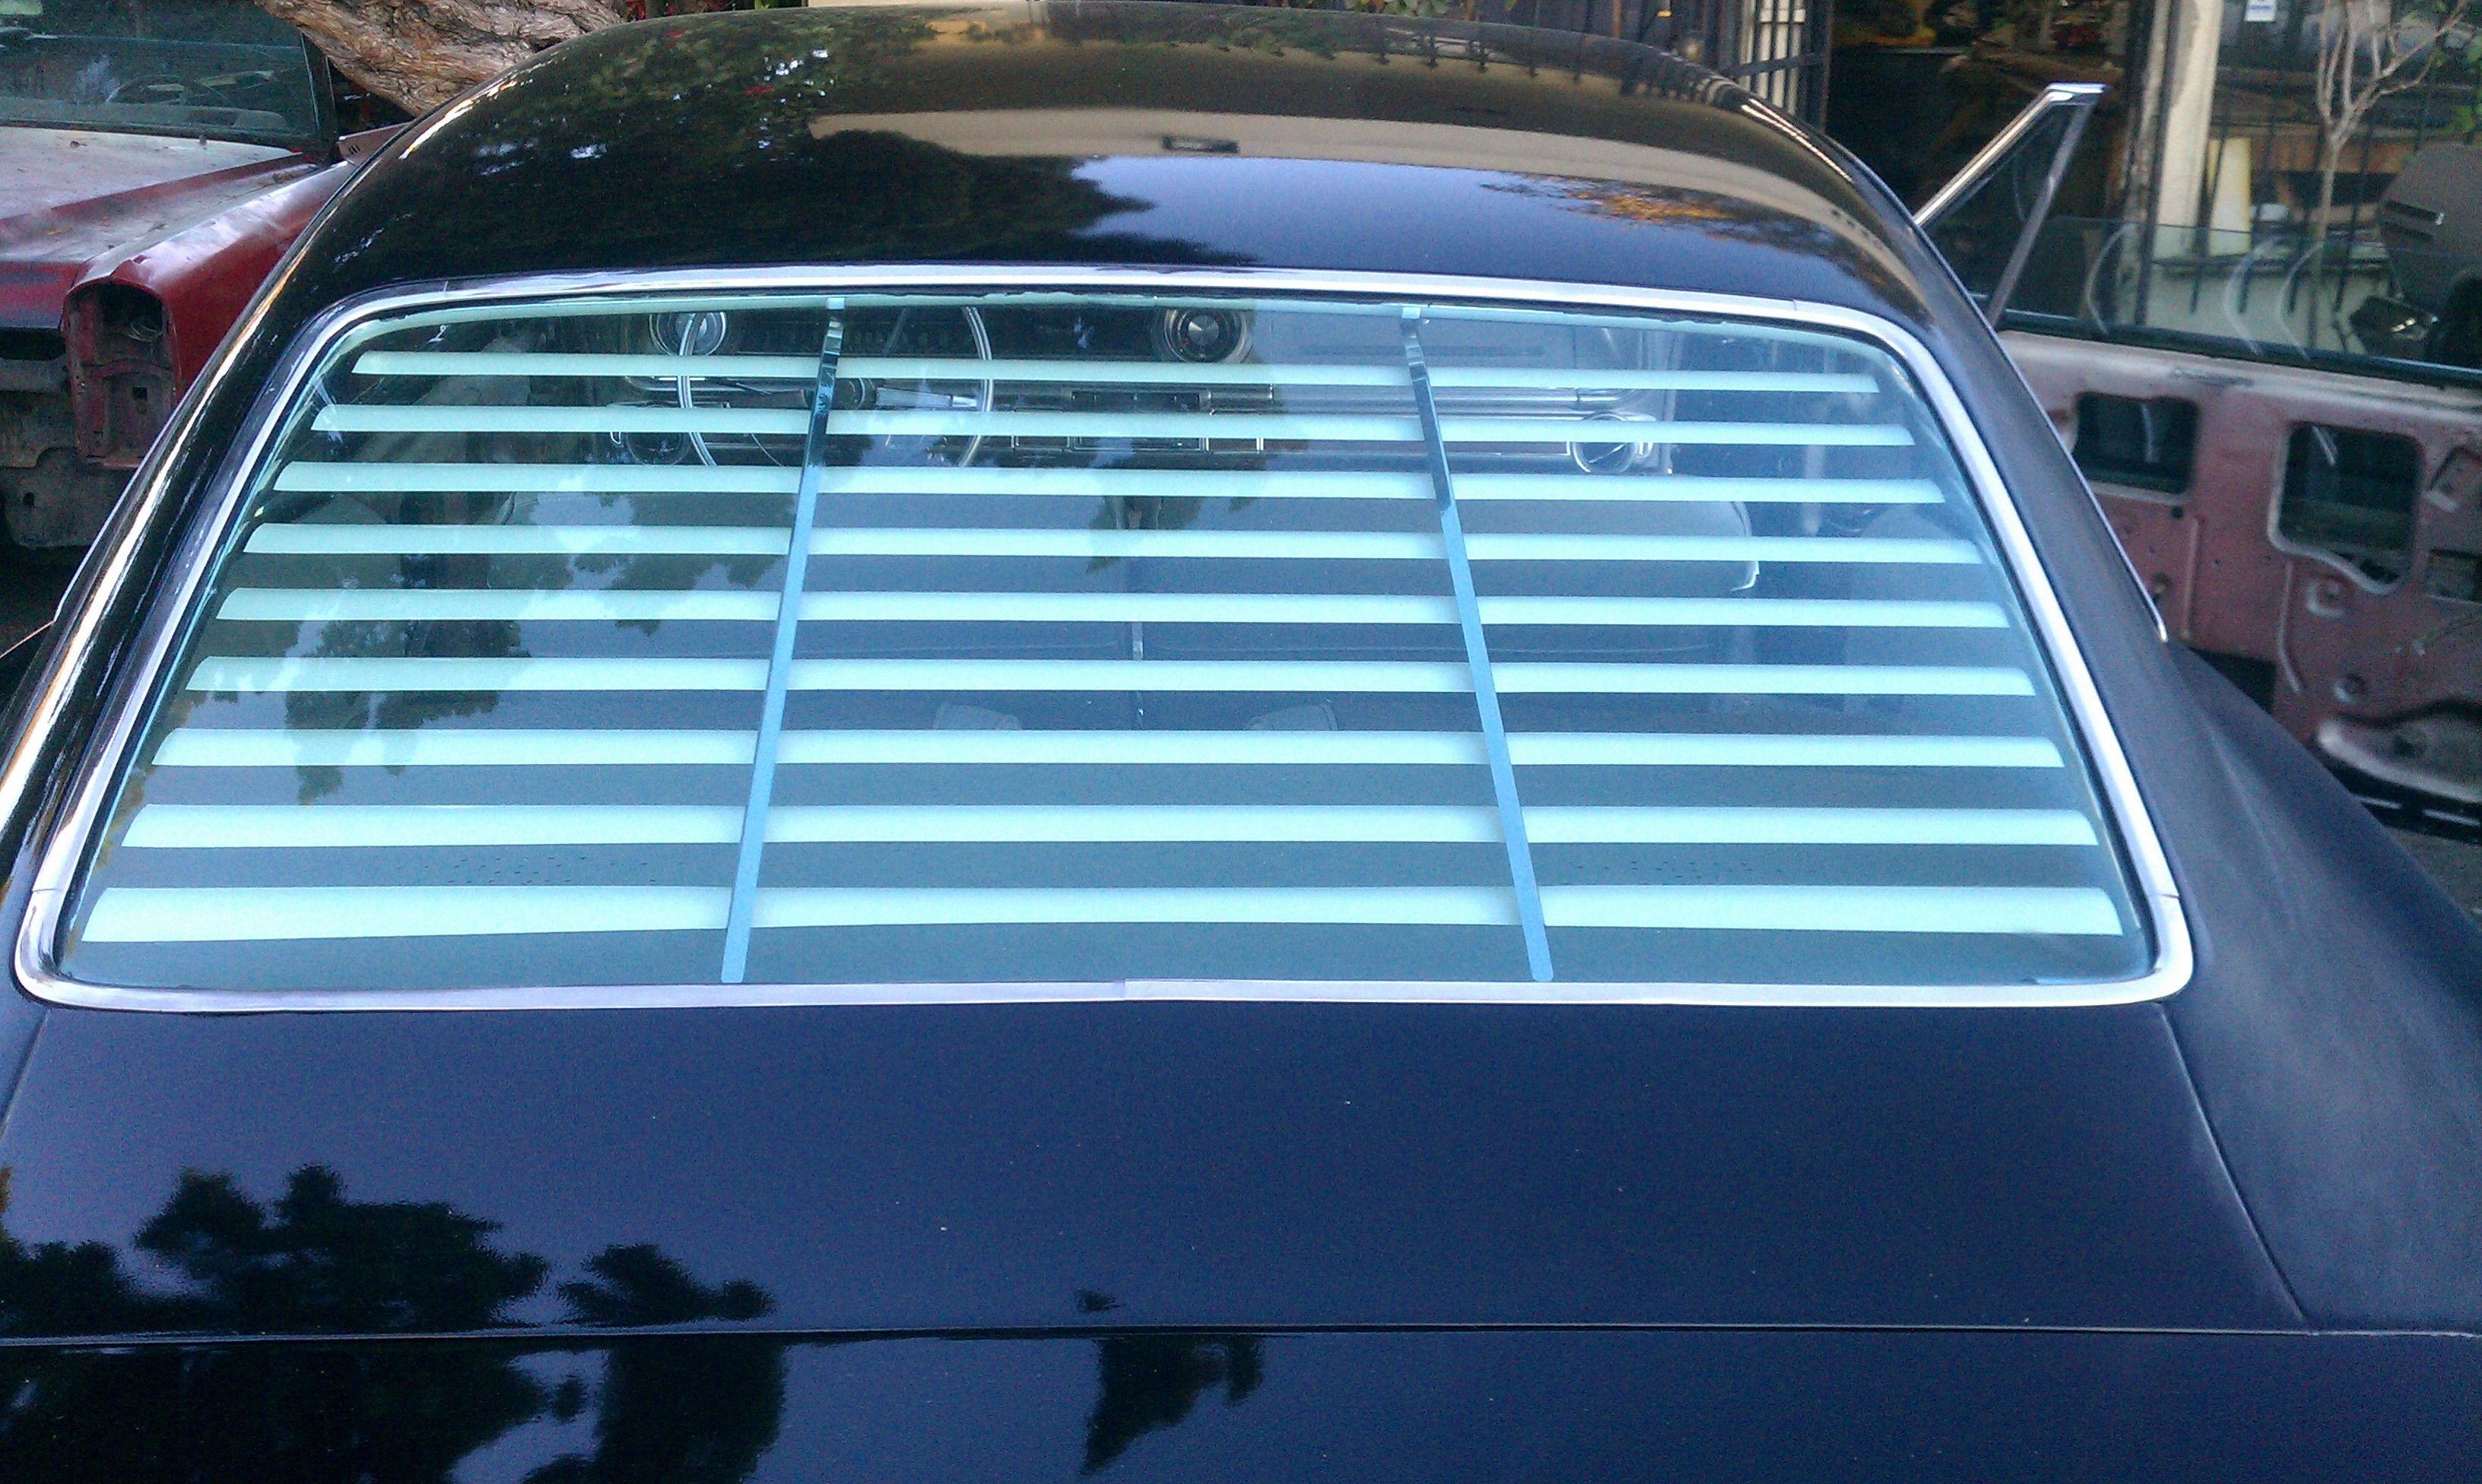 1965 1968 Chevy Impala Rear Venetian Blinds 1968 Chevy Impala Venetian Blinds Impala